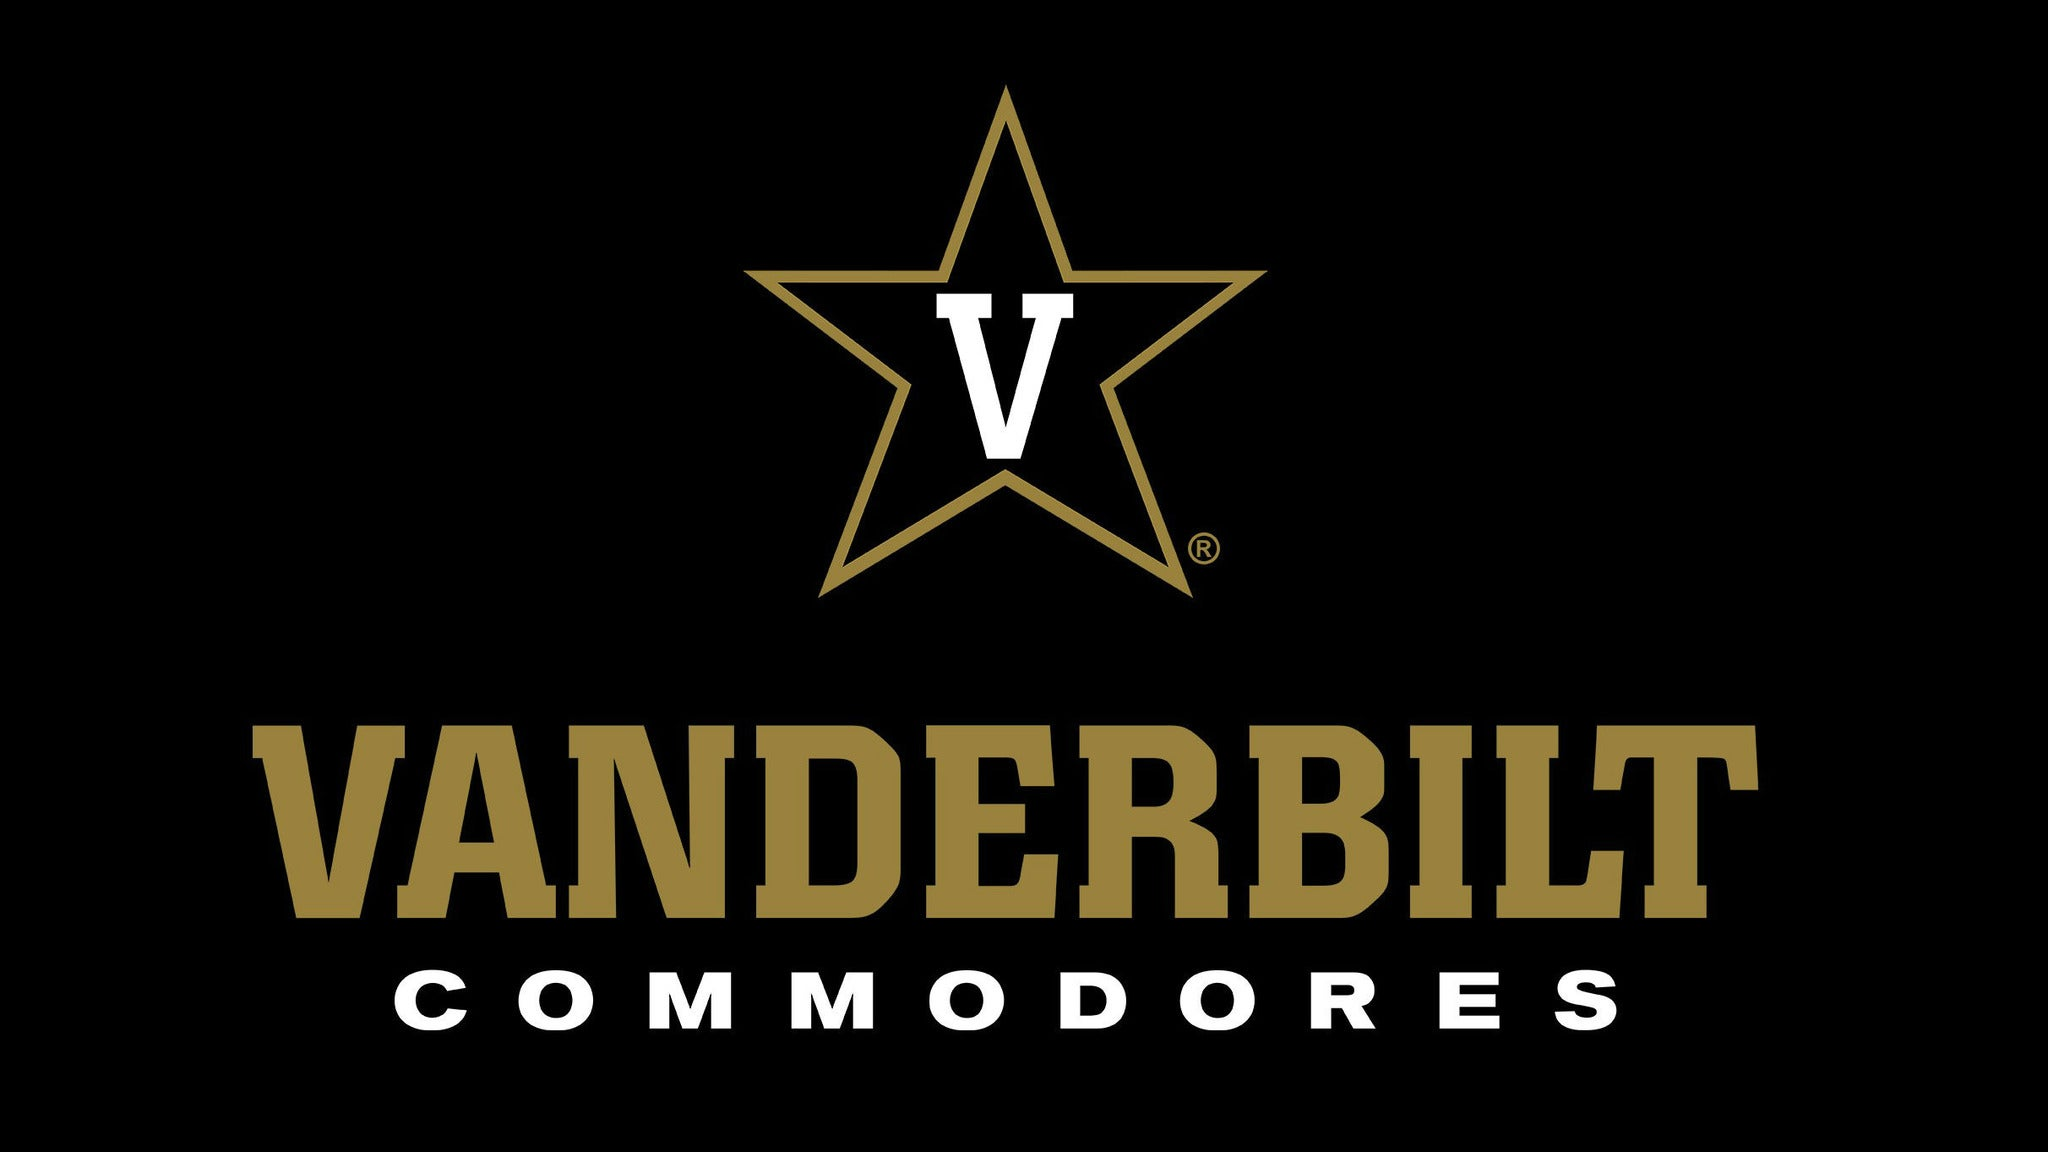 Vanderbilt Commodores Football